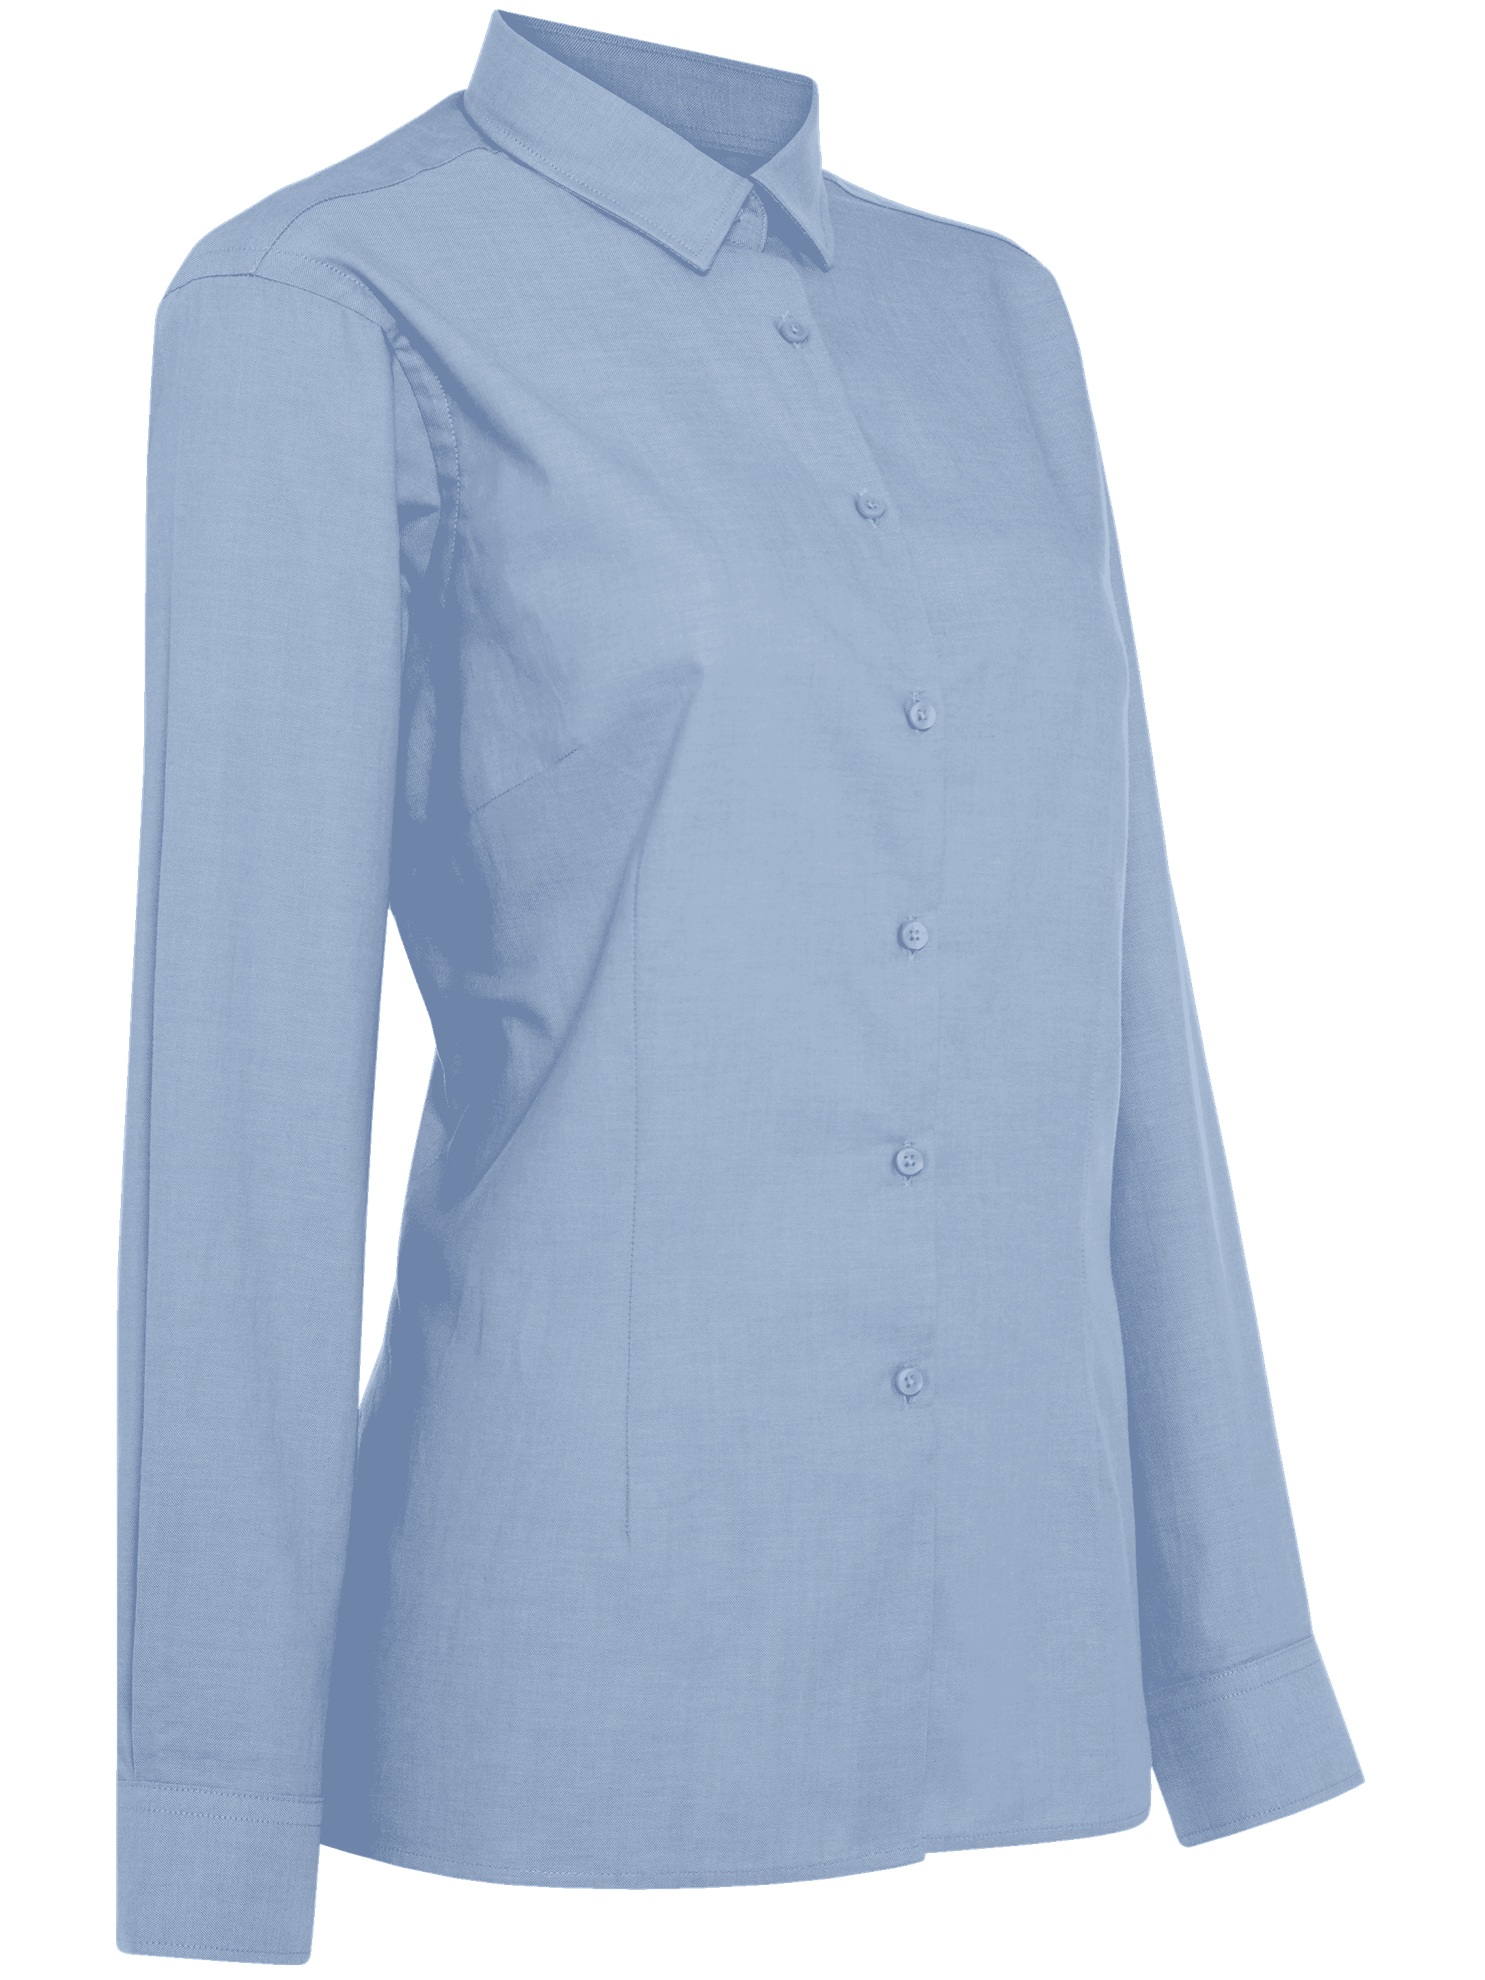 Picture of Ladies Long Sleeve Oxford Shirt - Light Blue